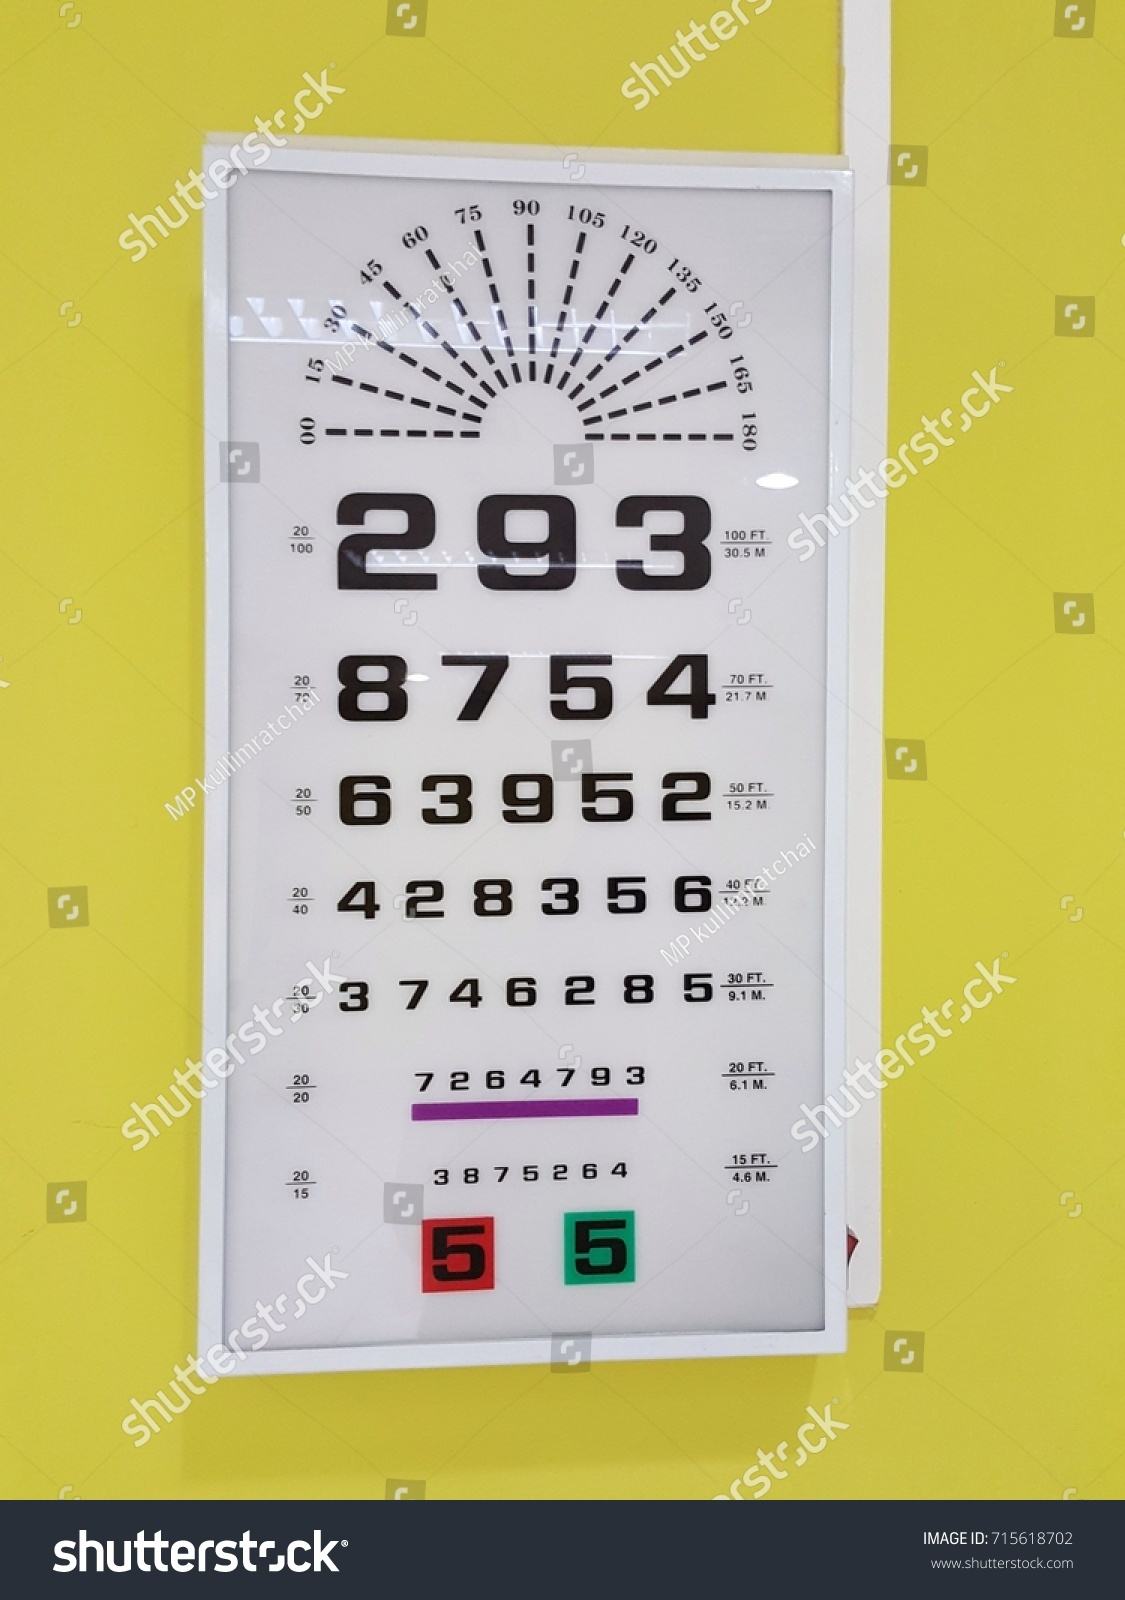 Snellen charteyes test chart on yellow stock photo 715618702 snellen charteyes test chart on yellow wall opticians ophthalmology and optometry eye test geenschuldenfo Image collections